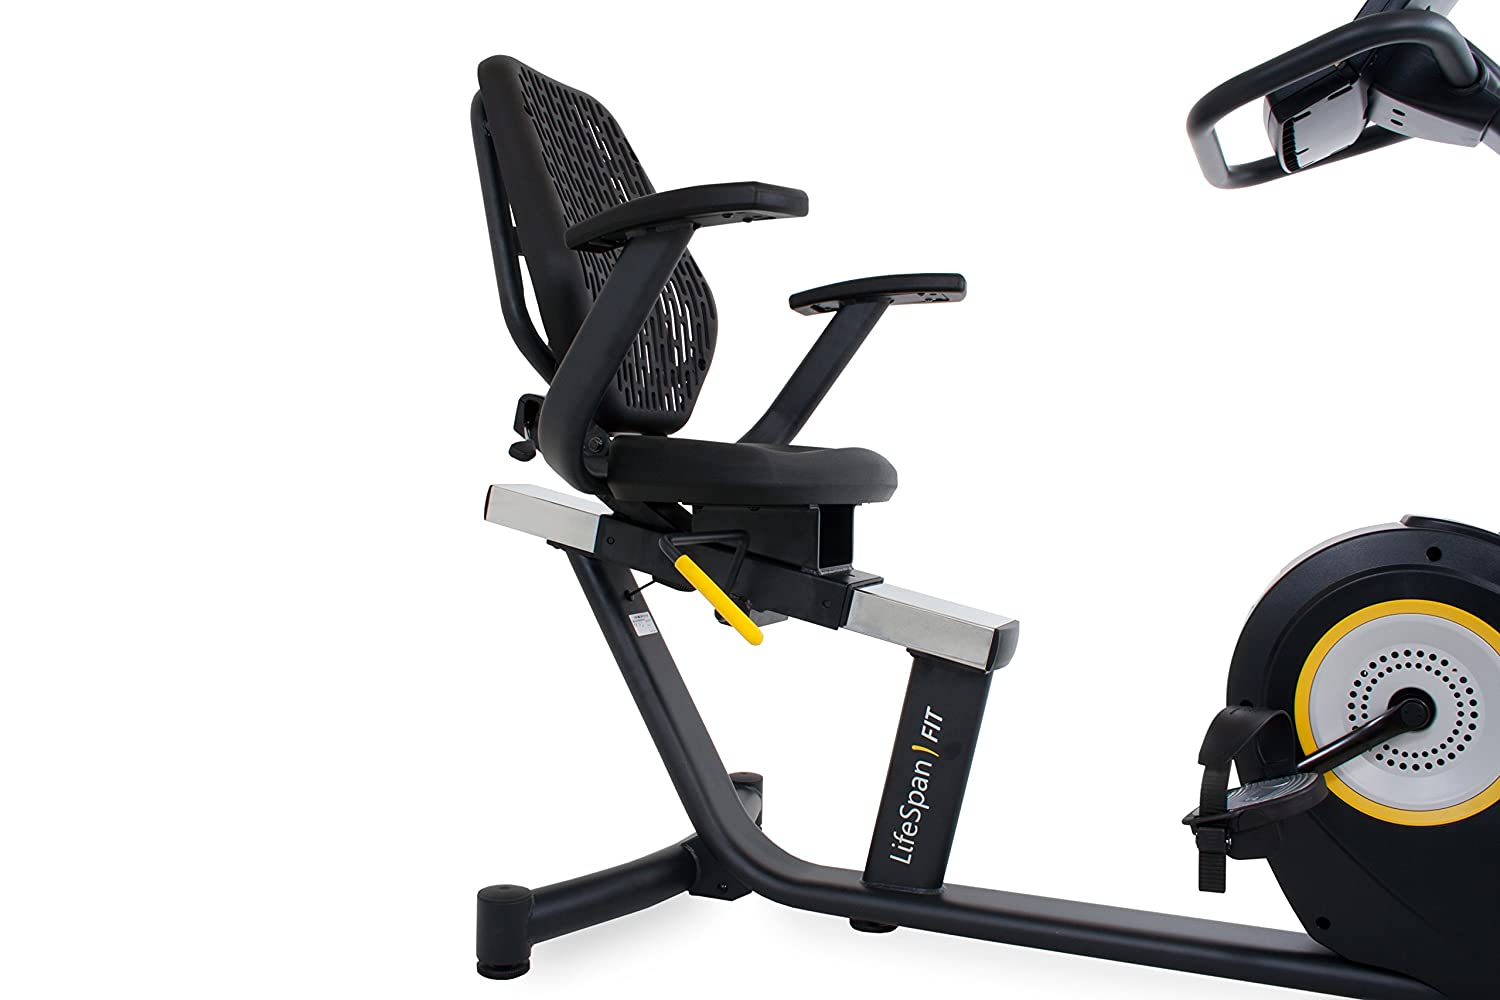 LifeSpan Fitness Recumbent Bike LifeSpan R5i Recumbent Stationary Bike, Black